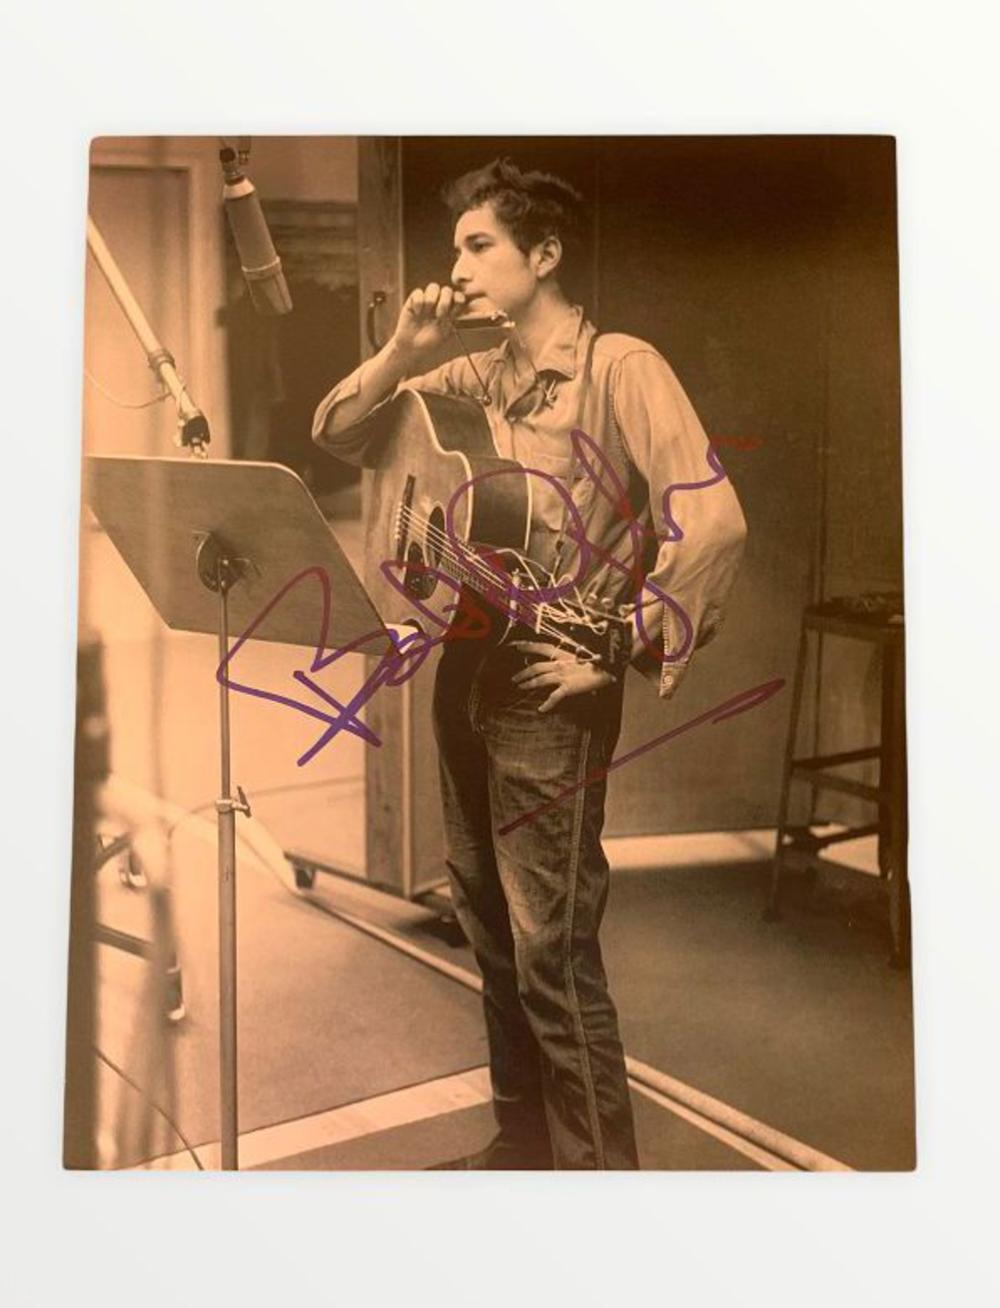 Bob Dylan Signed Photograph Certified